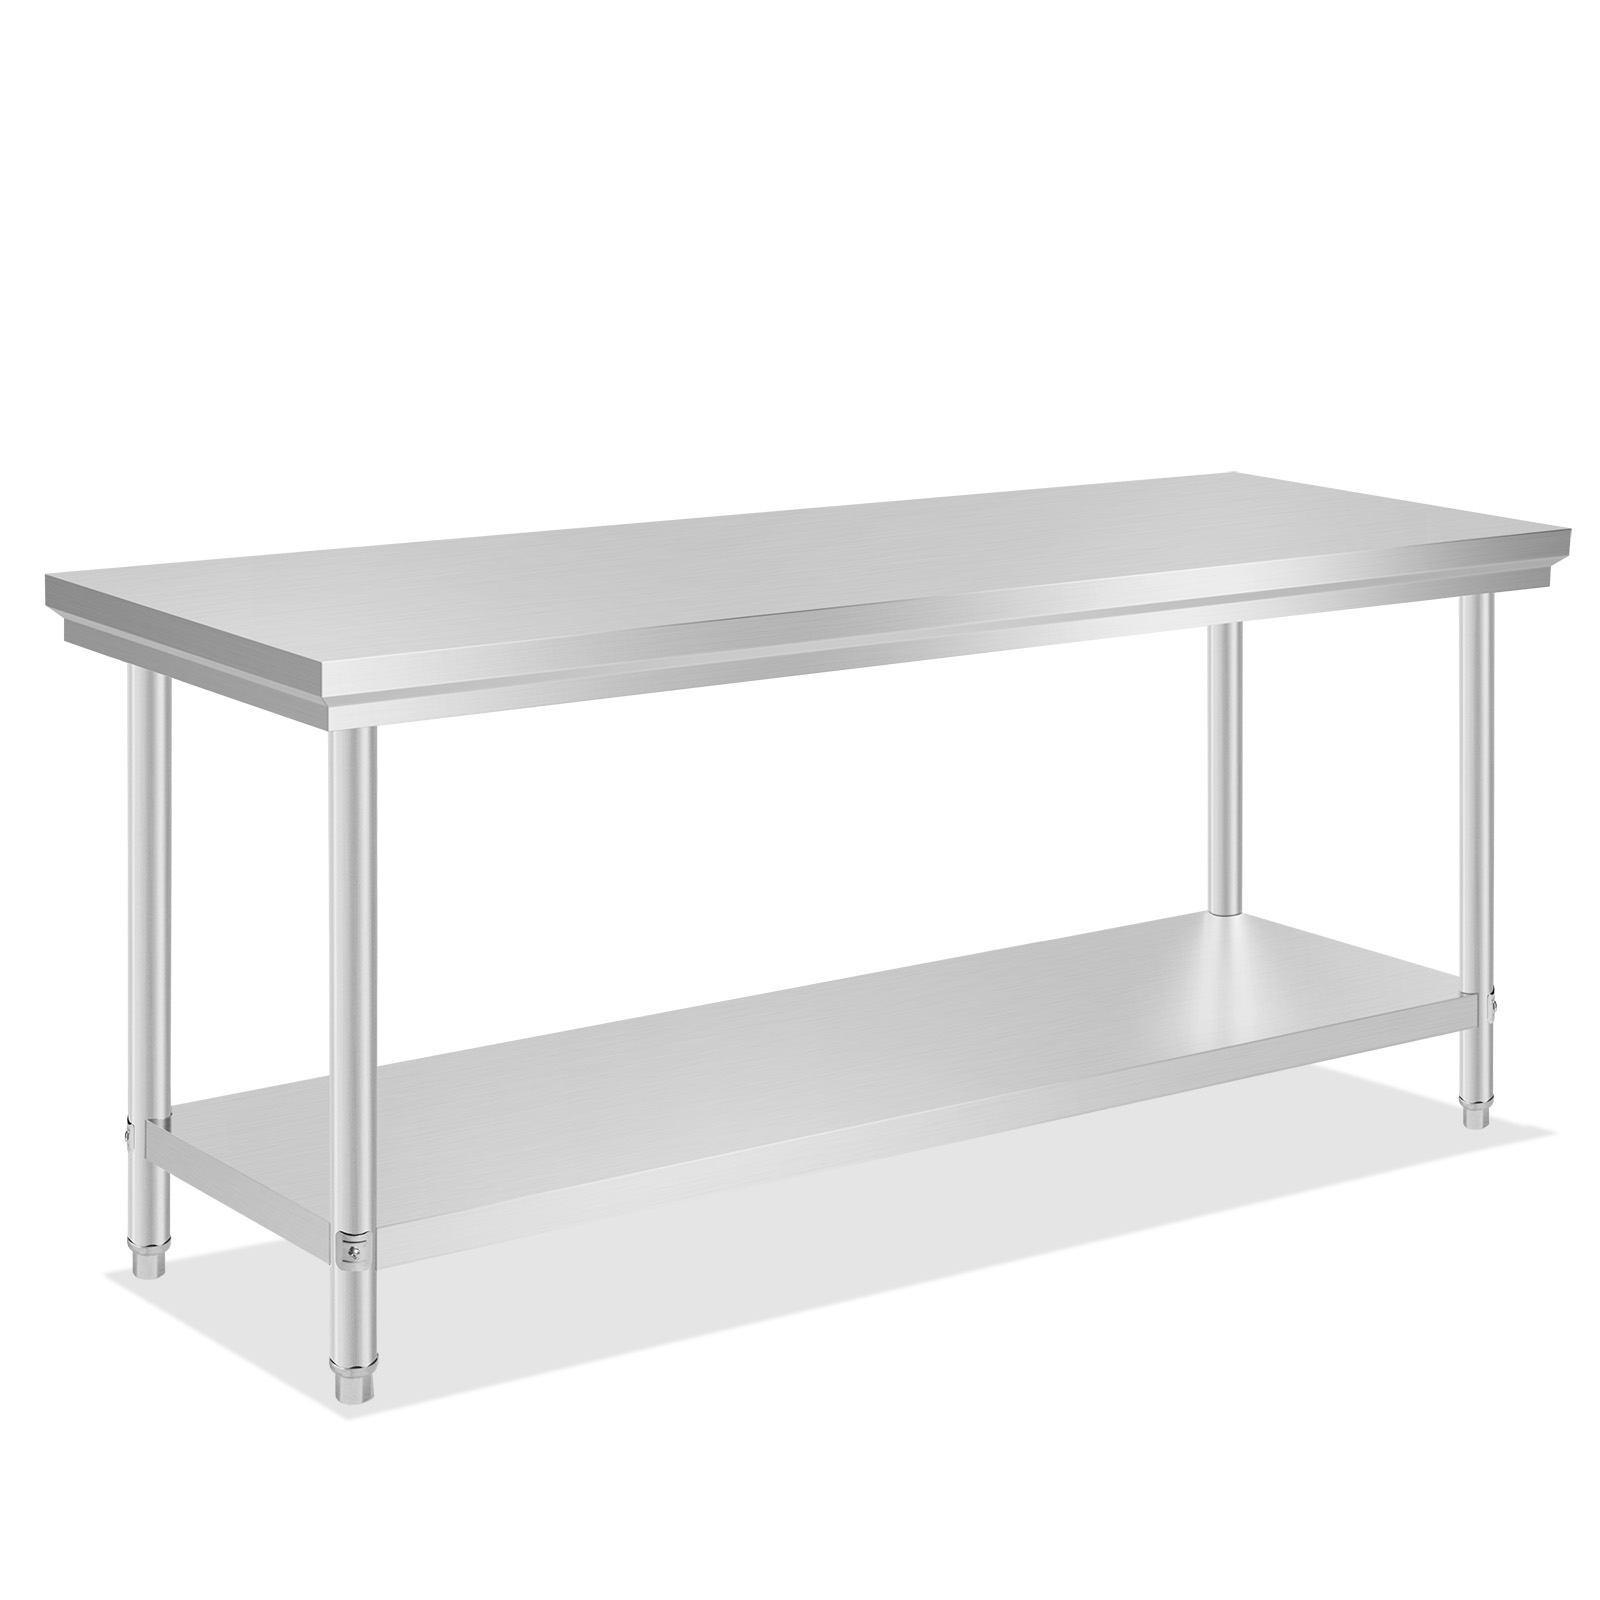 Commercial stainless steel work bench food kitchen catering table shelf ebay - Industrial kitchen table stainless steel ...